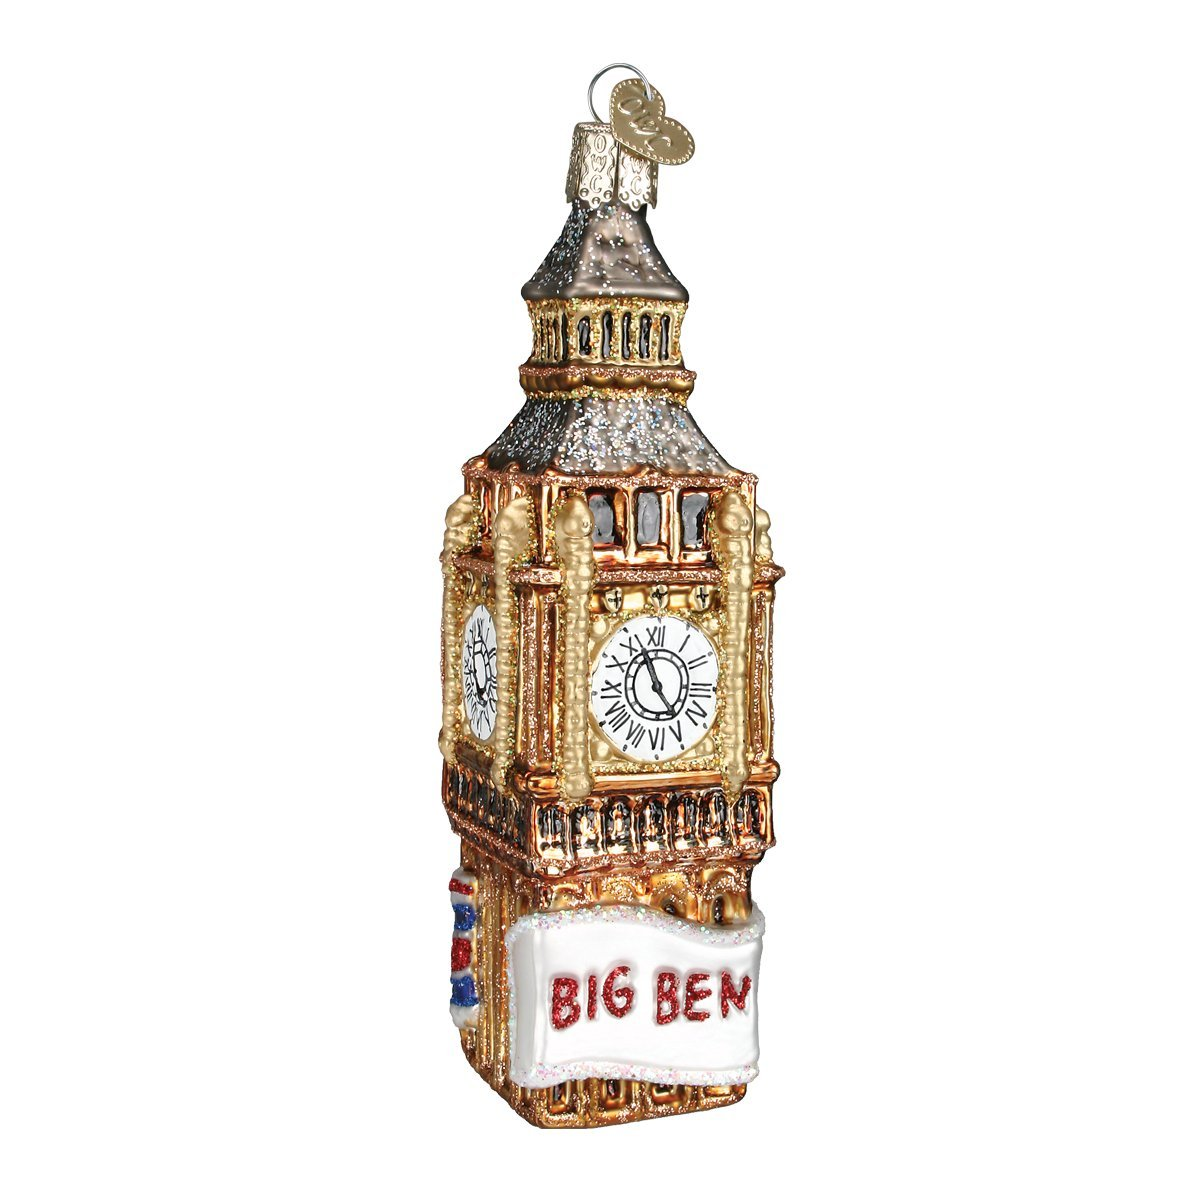 Amazon.com: Old World Christmas Ornaments: Big Ben Glass Blown Ornaments for Christmas Tree: Home & Kitchen